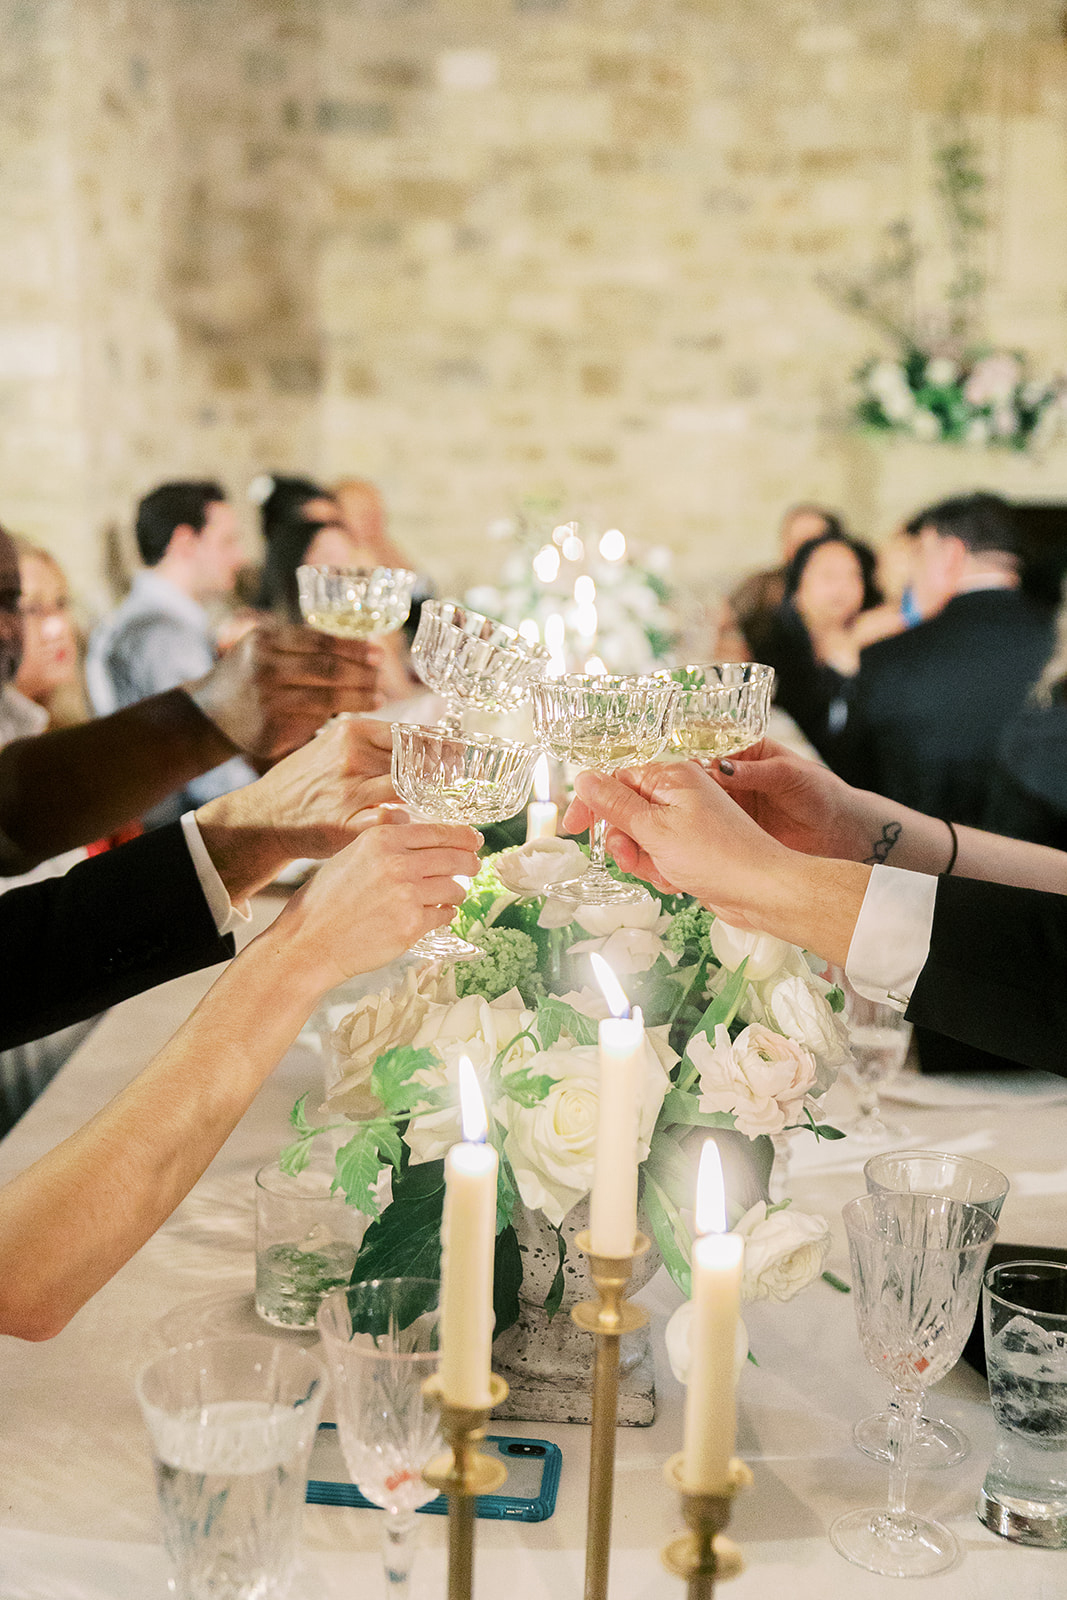 guests toast with glasses during reception